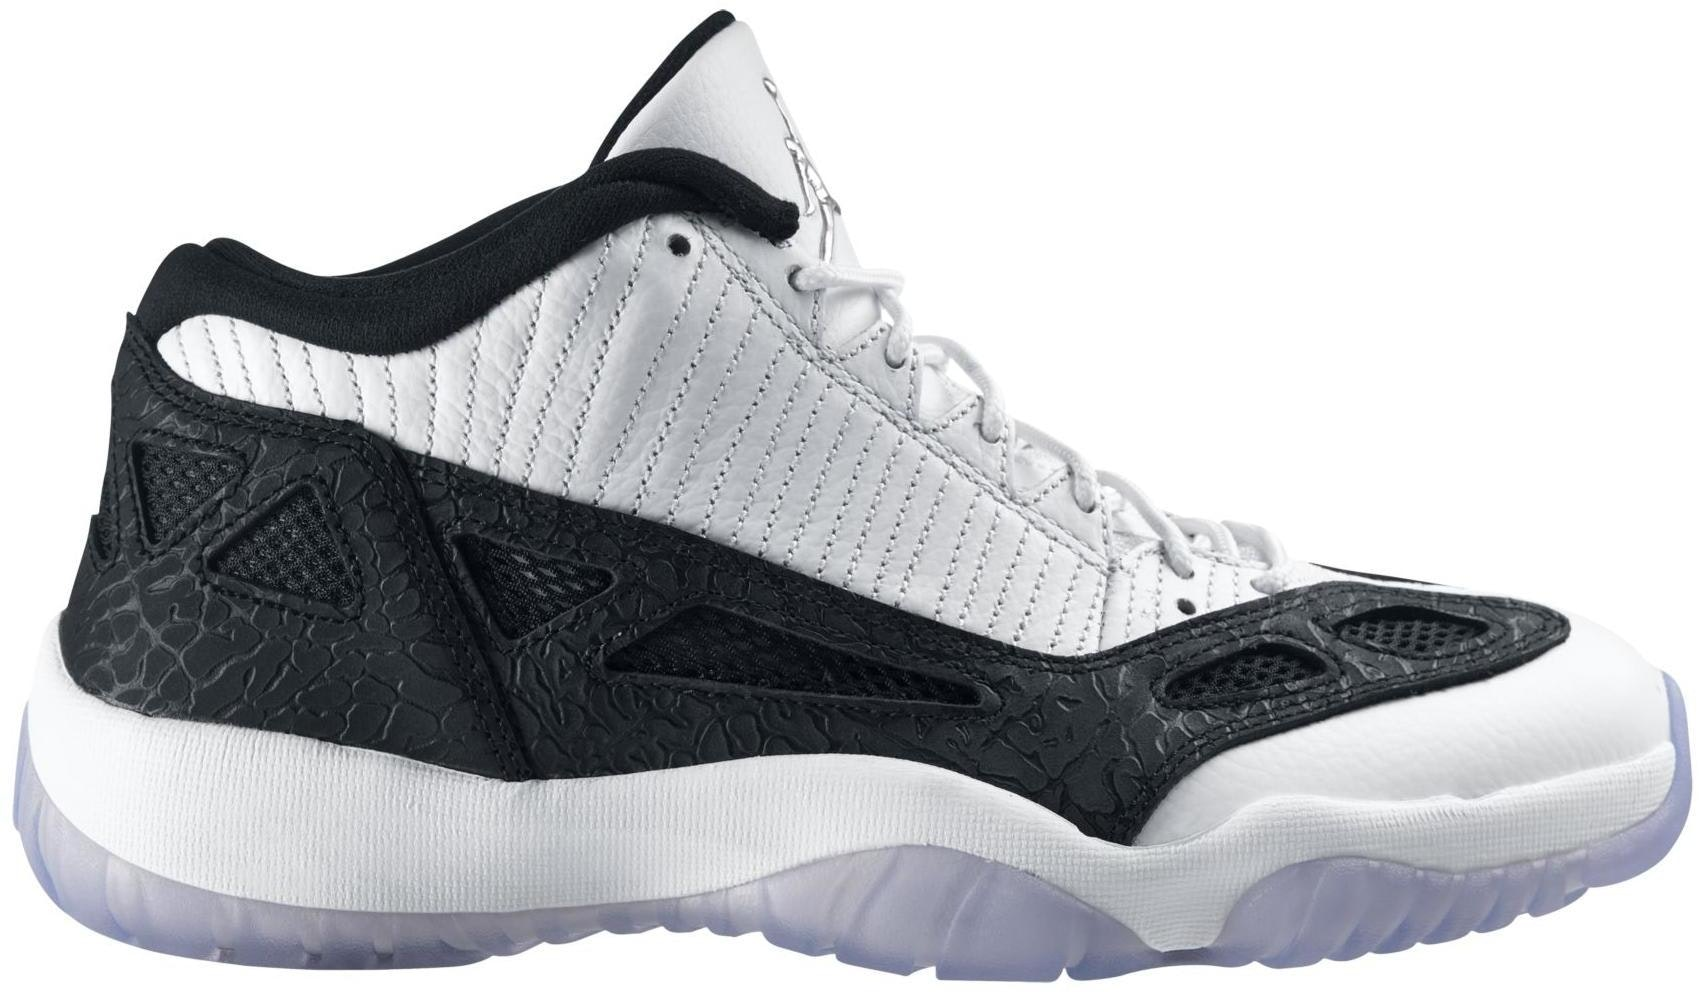 Retro Air Jordan 11: Buy and Sell Authentic Shoes